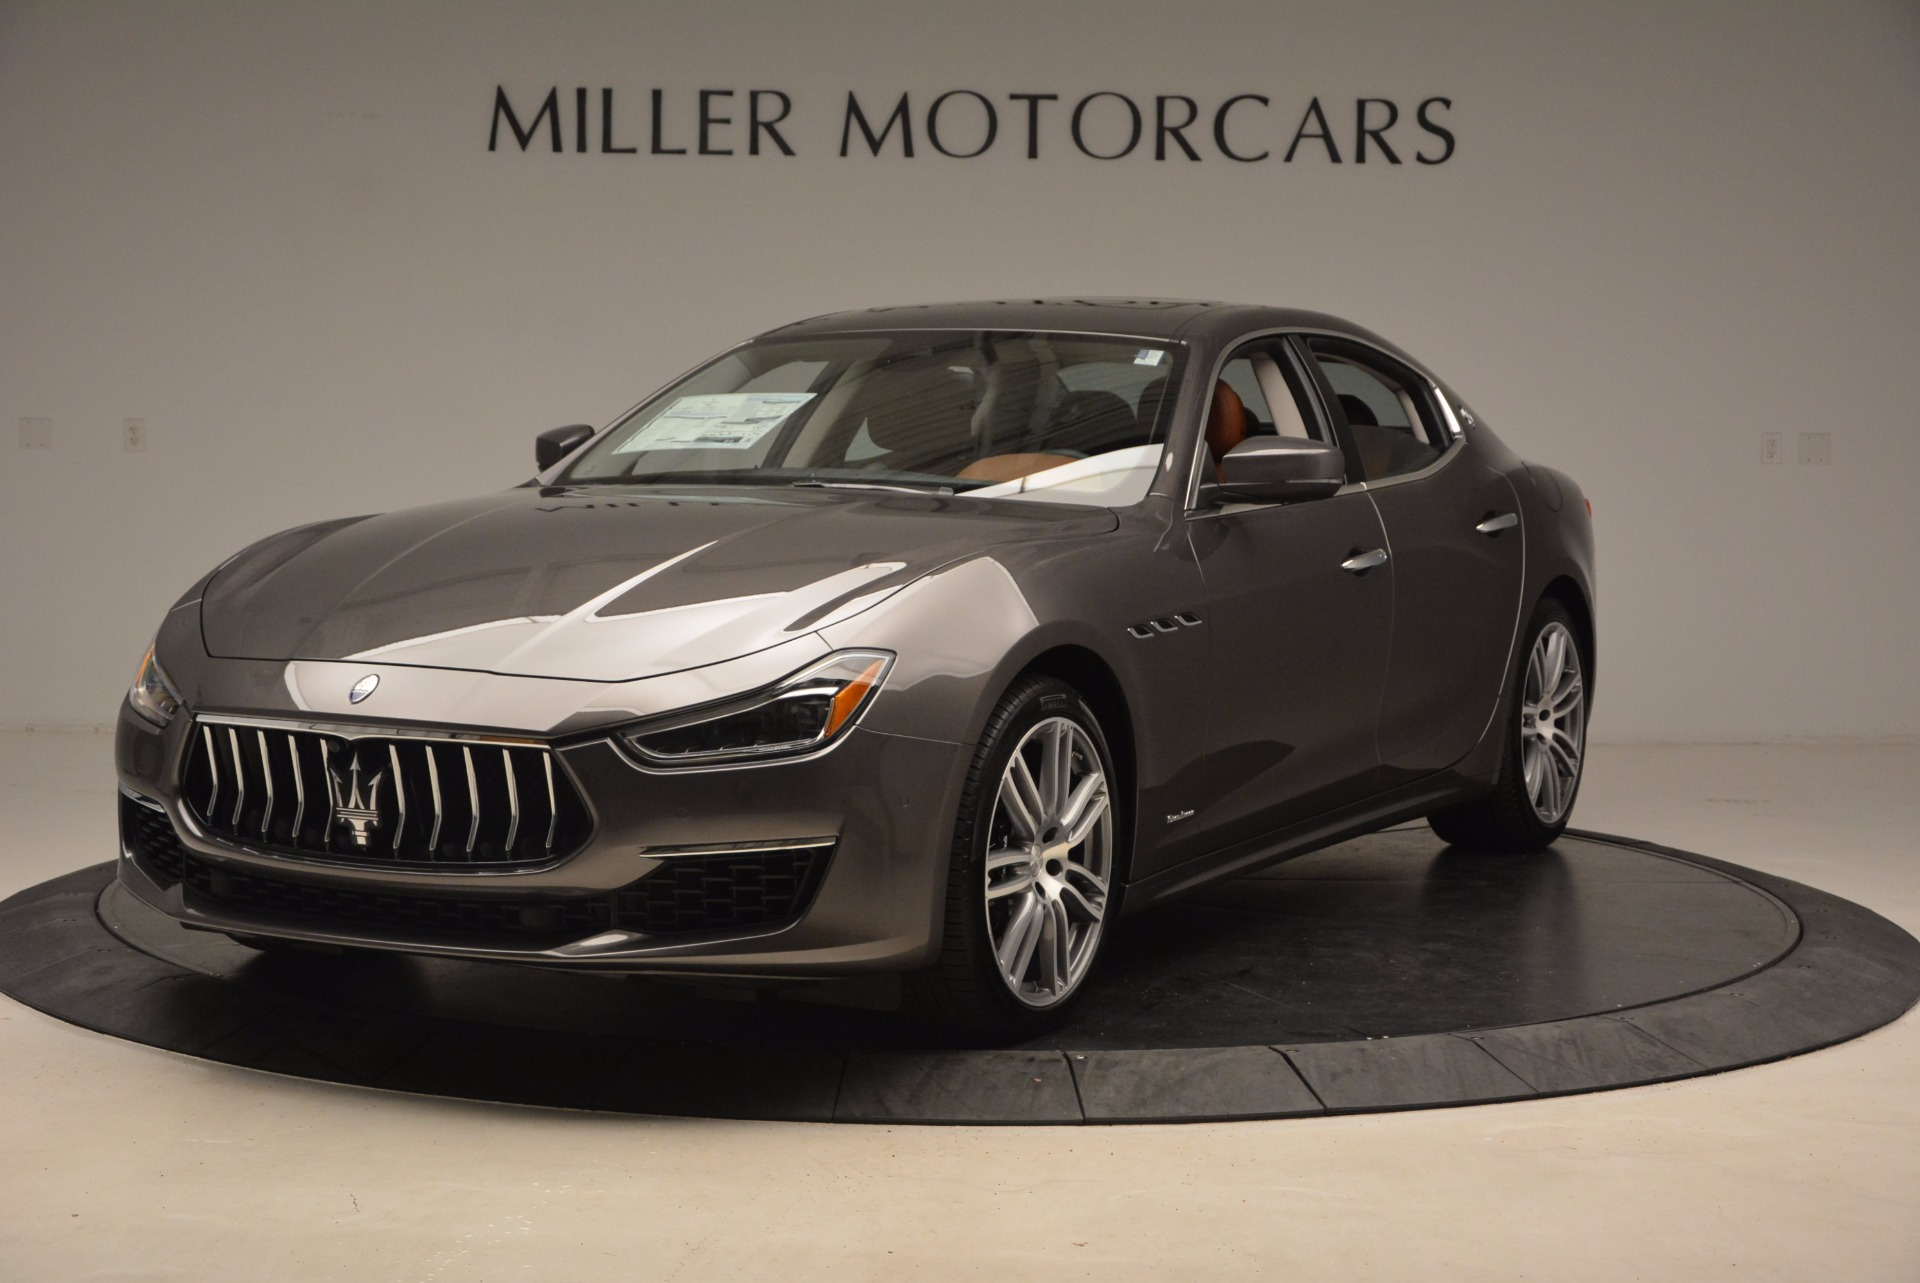 New 2018 Maserati Ghibli S Q4 GranLusso For Sale In Greenwich, CT. Alfa Romeo of Greenwich, M2005